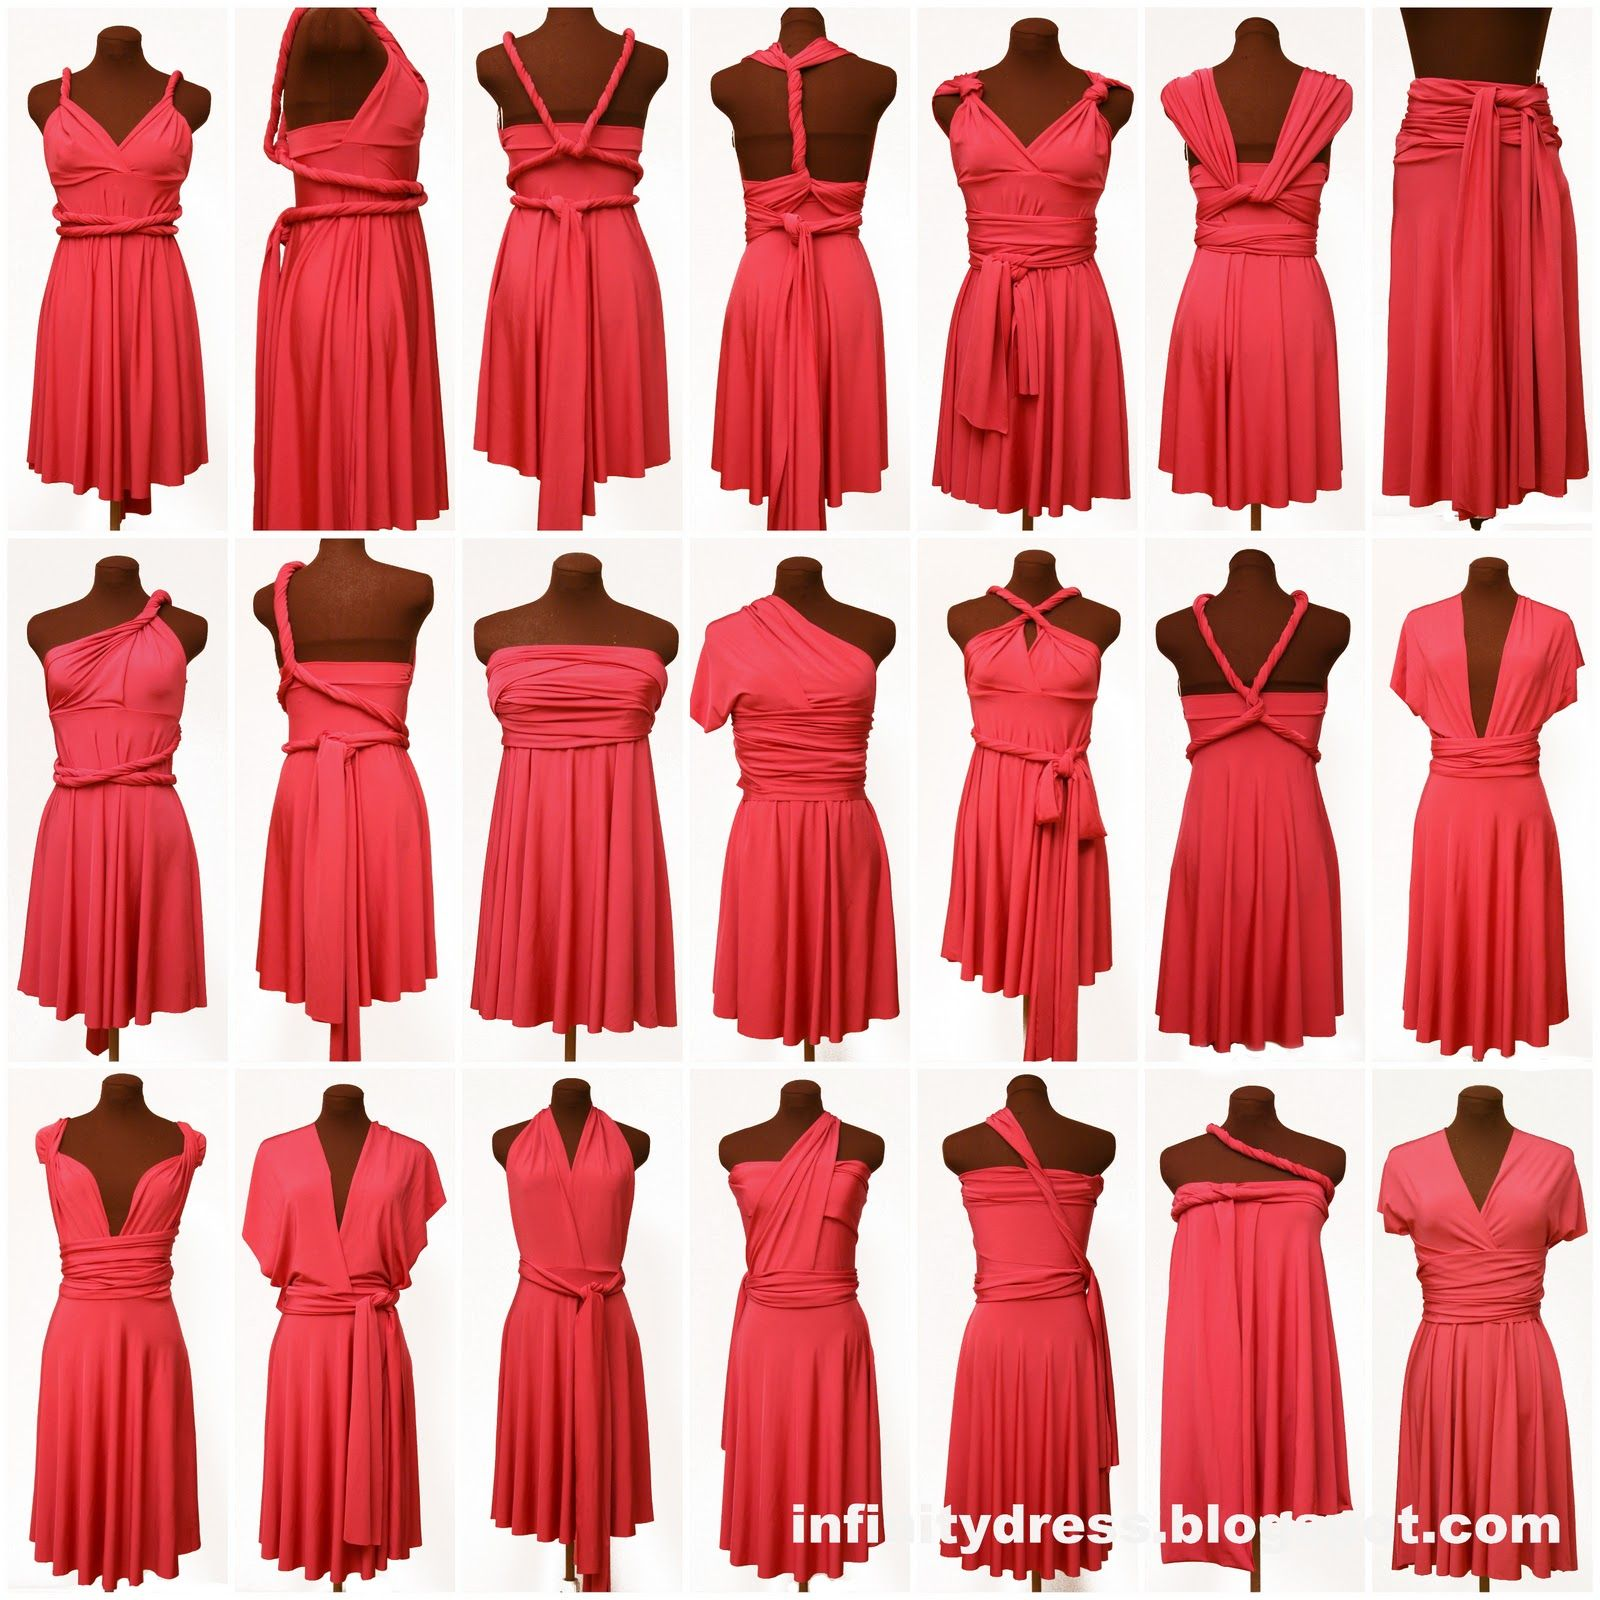 Easiest Most Versatile Dress On The Planet Infinity Crafty Swaps